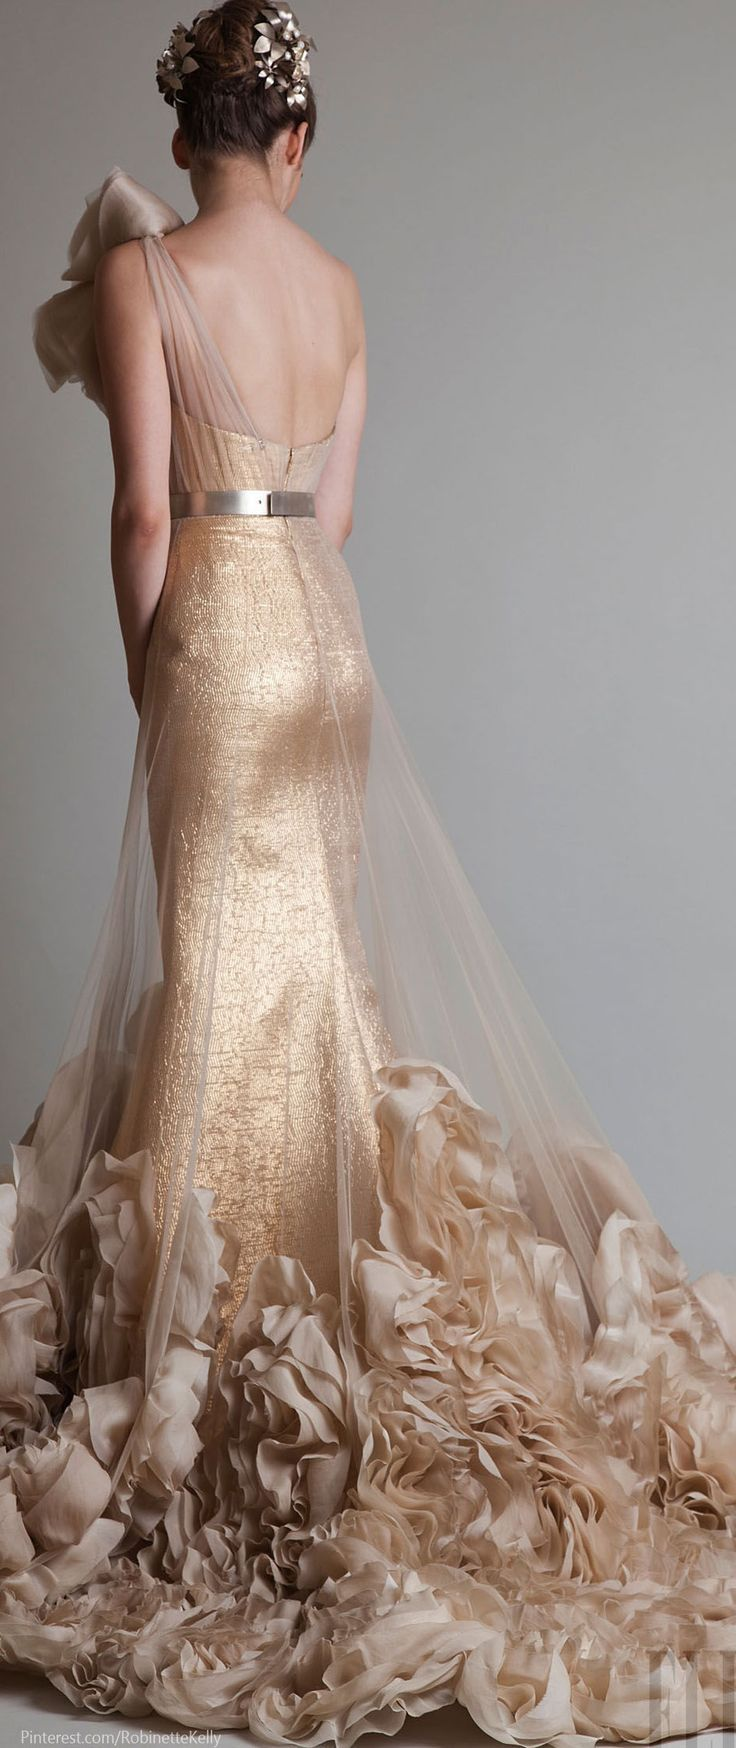 Please I want this as my wedding dress!